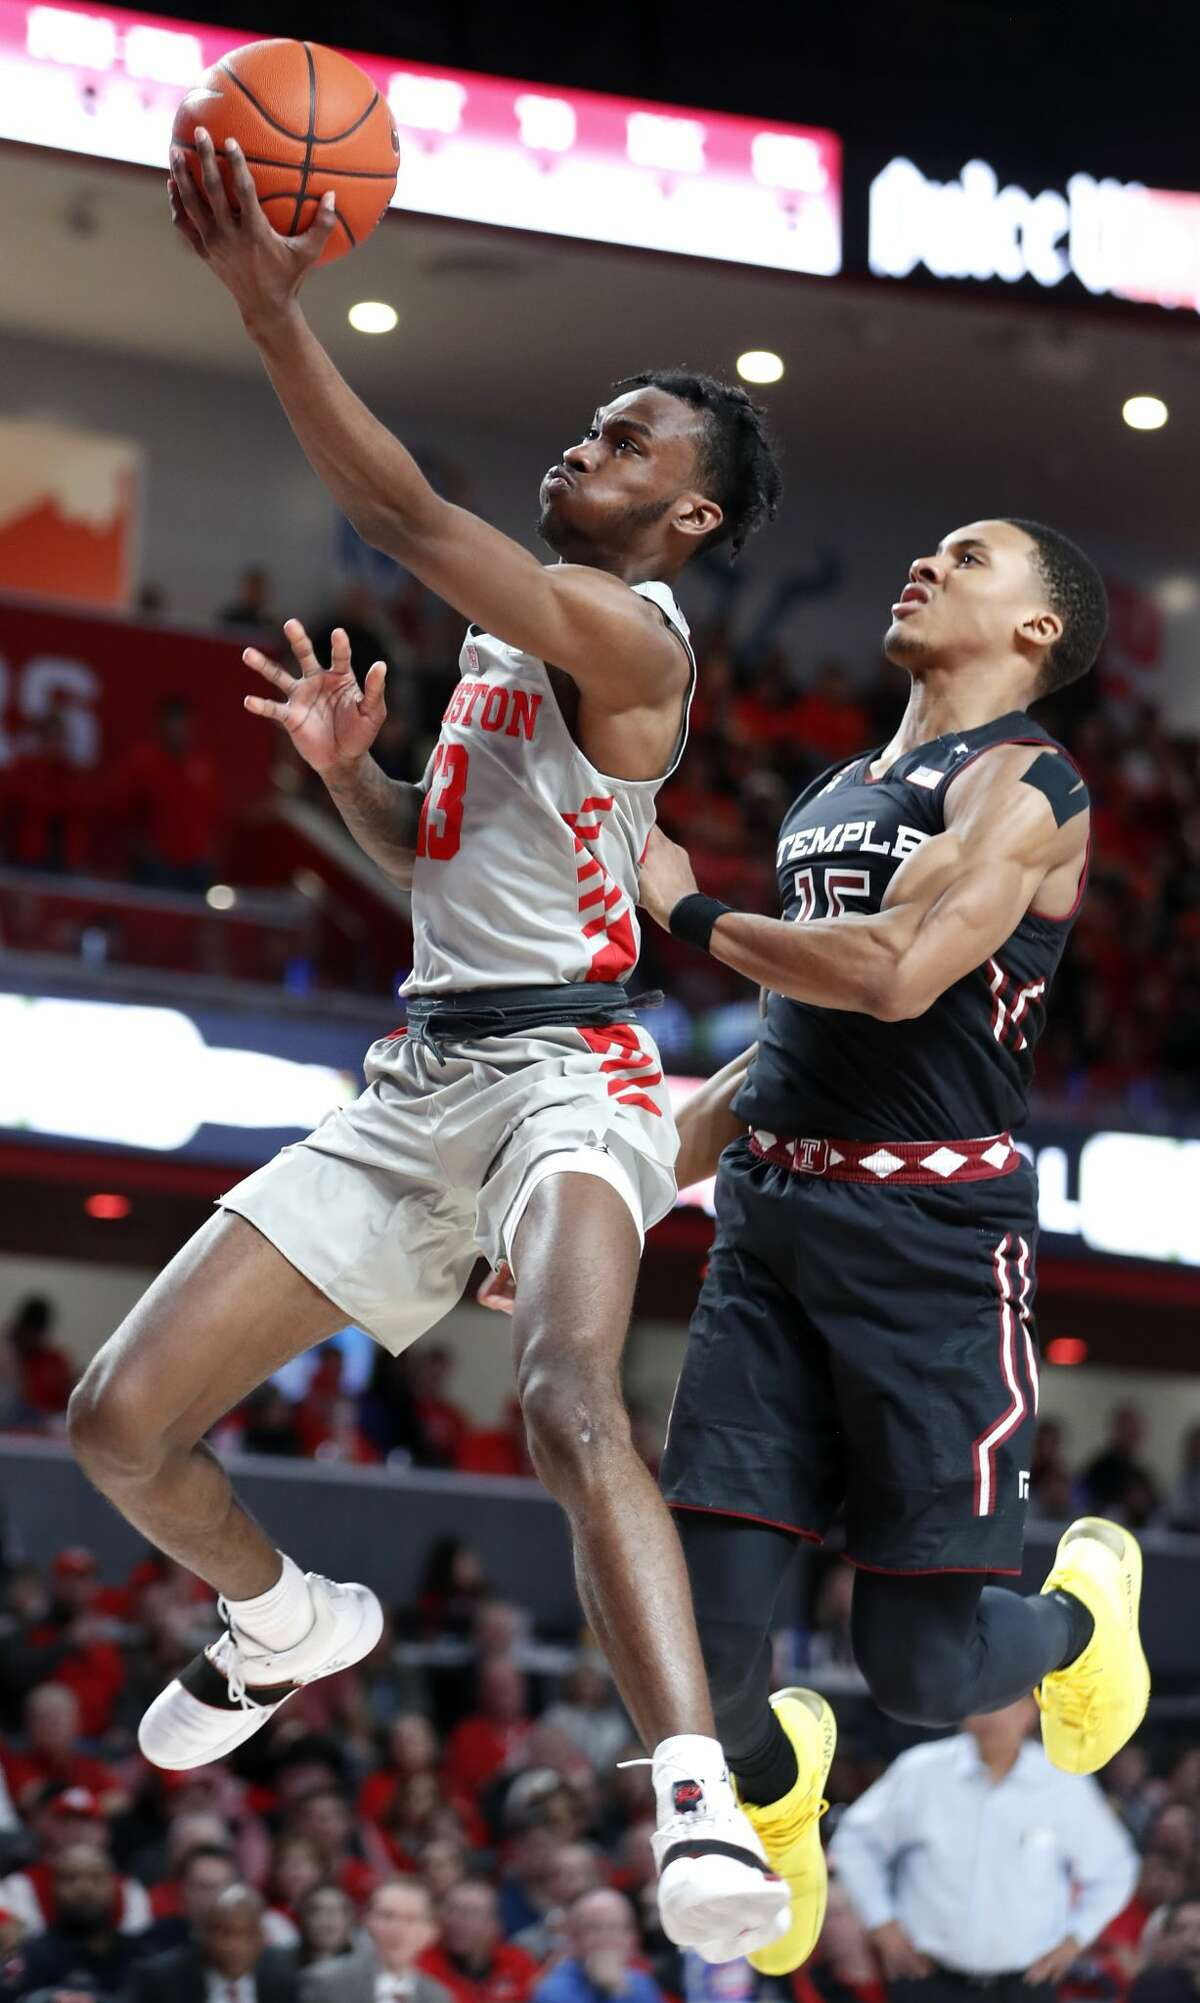 Houston guard Dejon Jarreau (13) drives past Temple guard Nate Pierre-Louis (15) for a layup during the second half of an NCAA basketball game at Fertitta Center on Thursday, Jan. 31, 2019, in Houston.